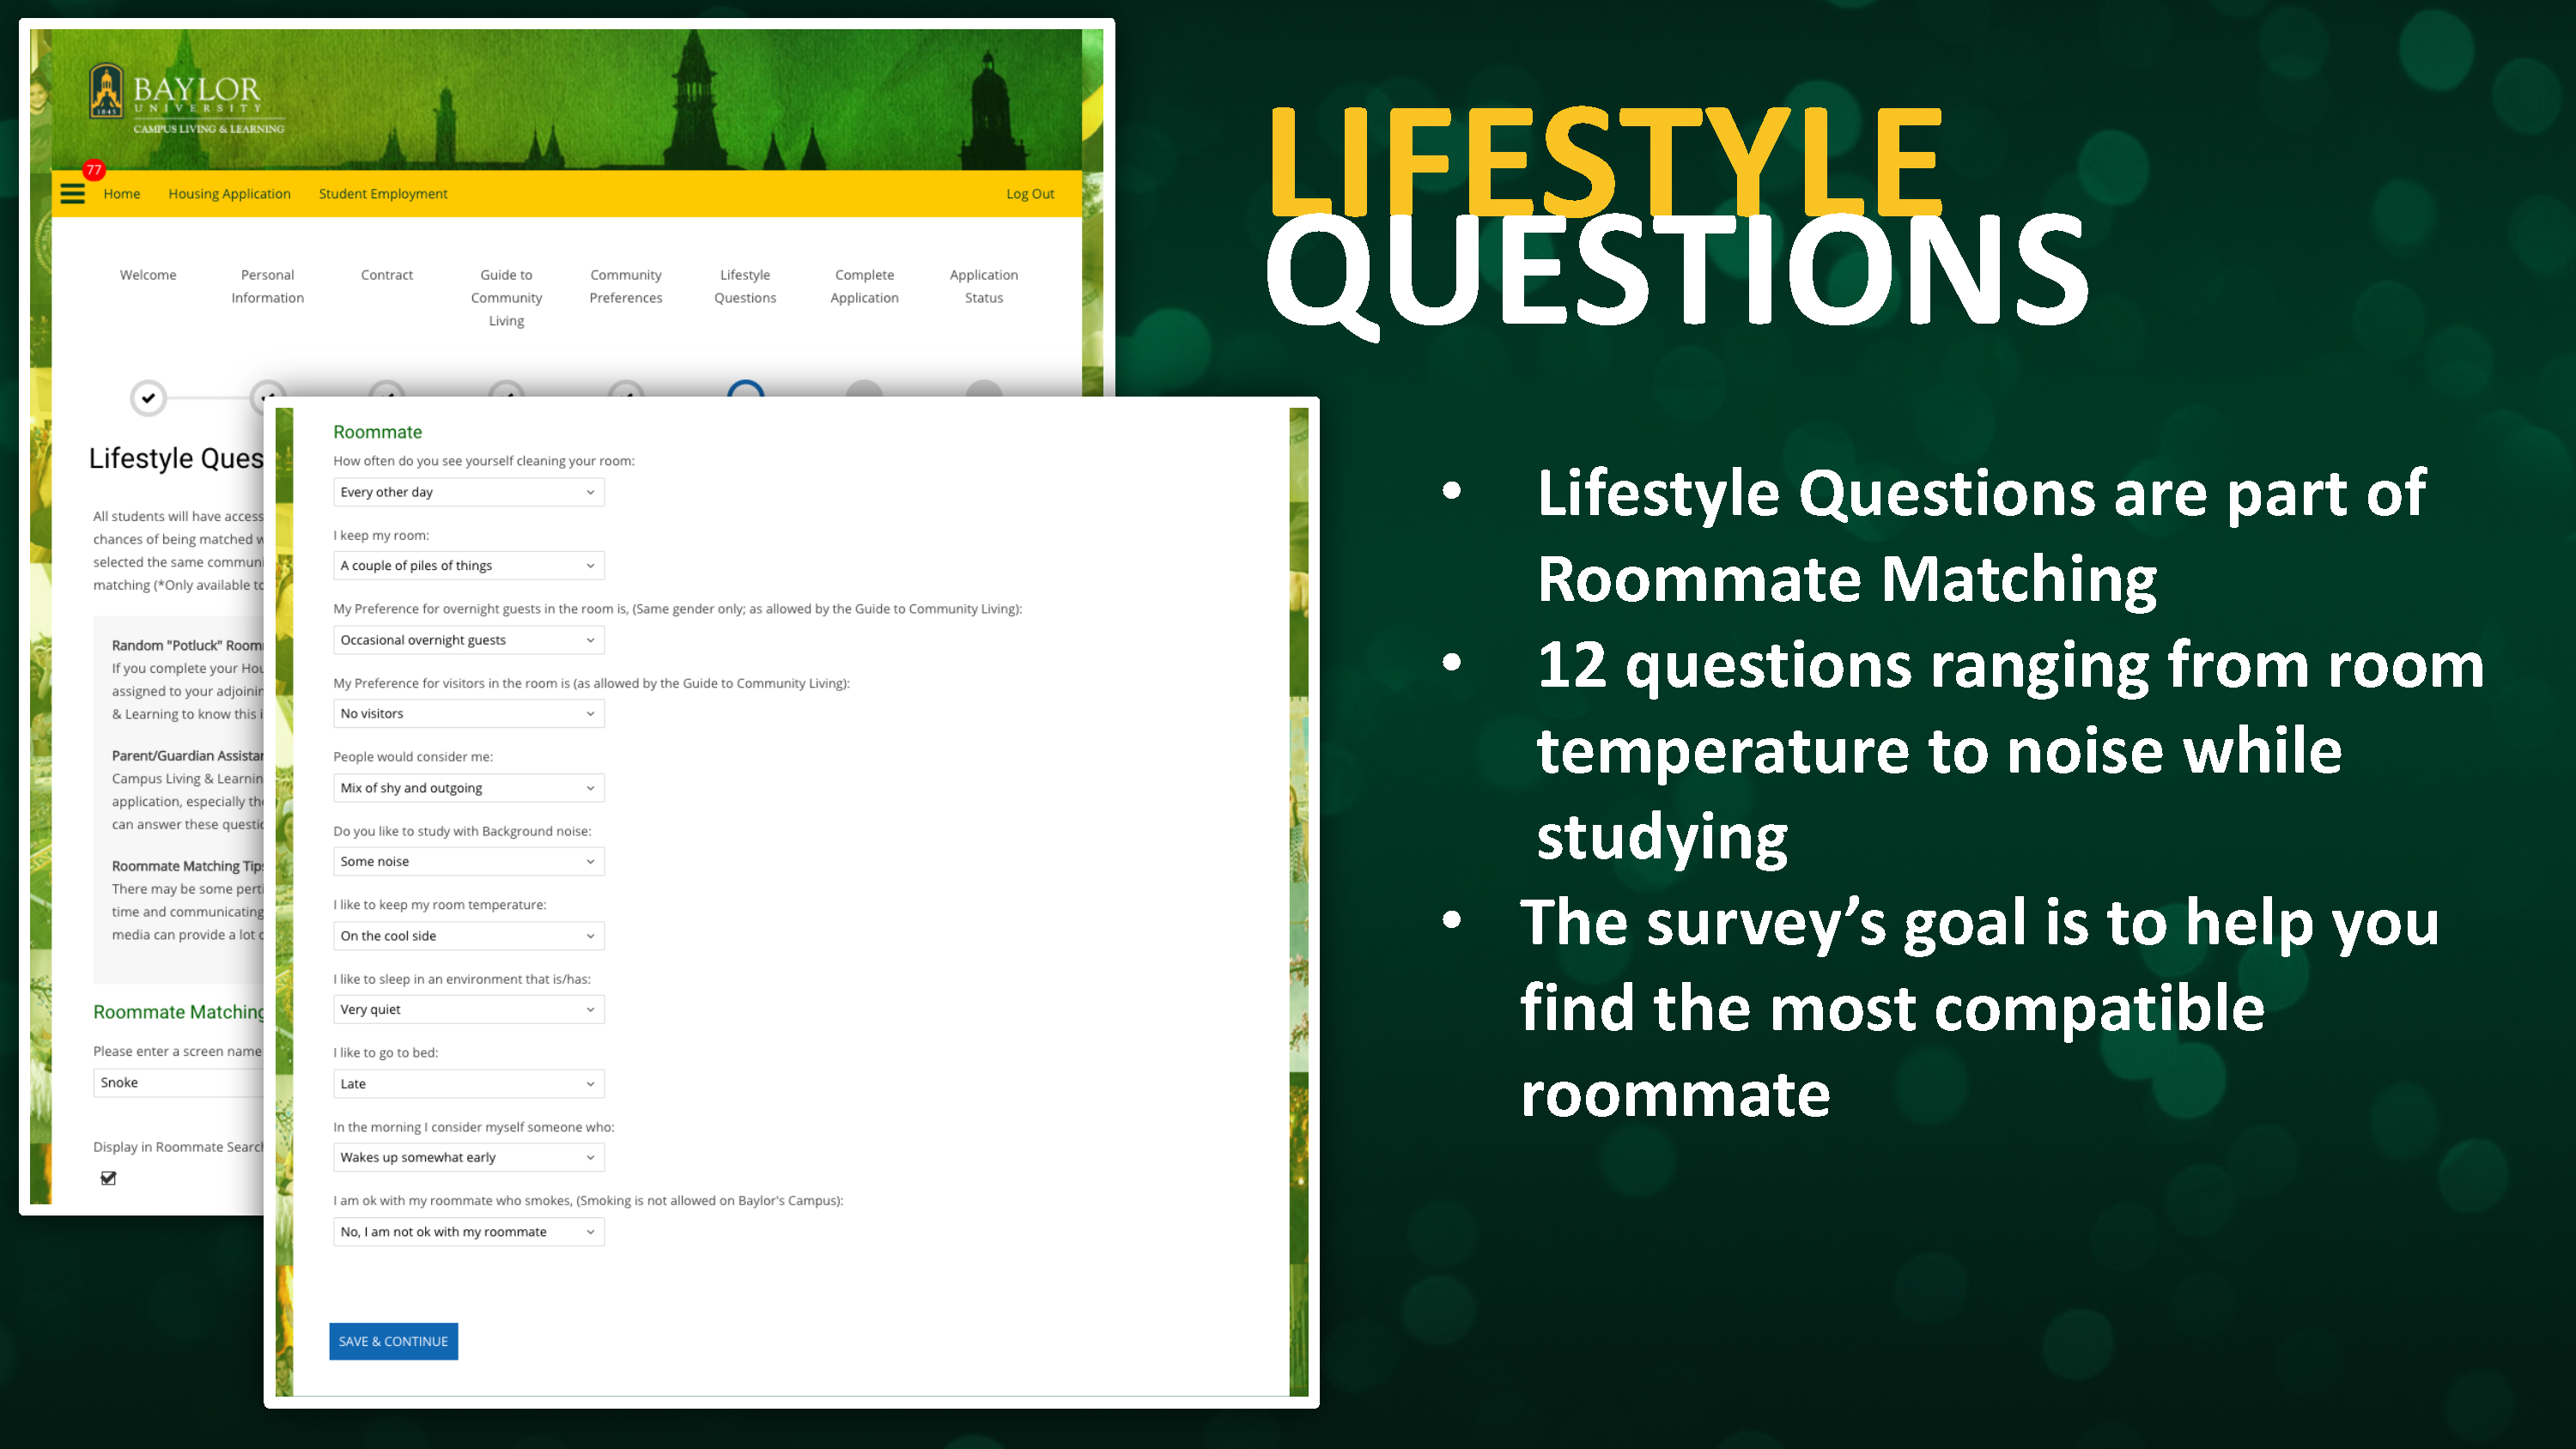 Lifestyle Questions